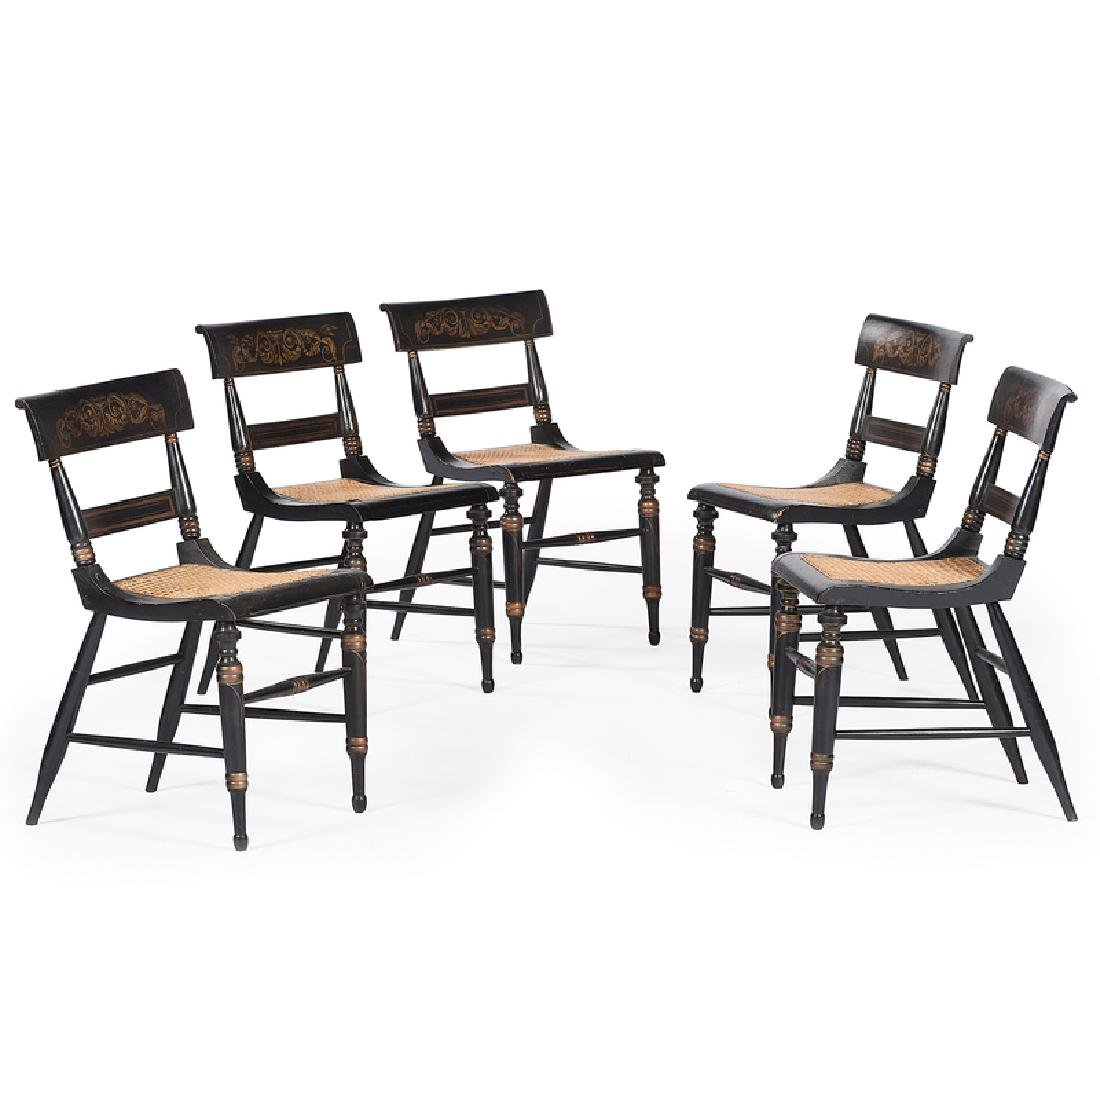 Sheraton Stenciled Chairs